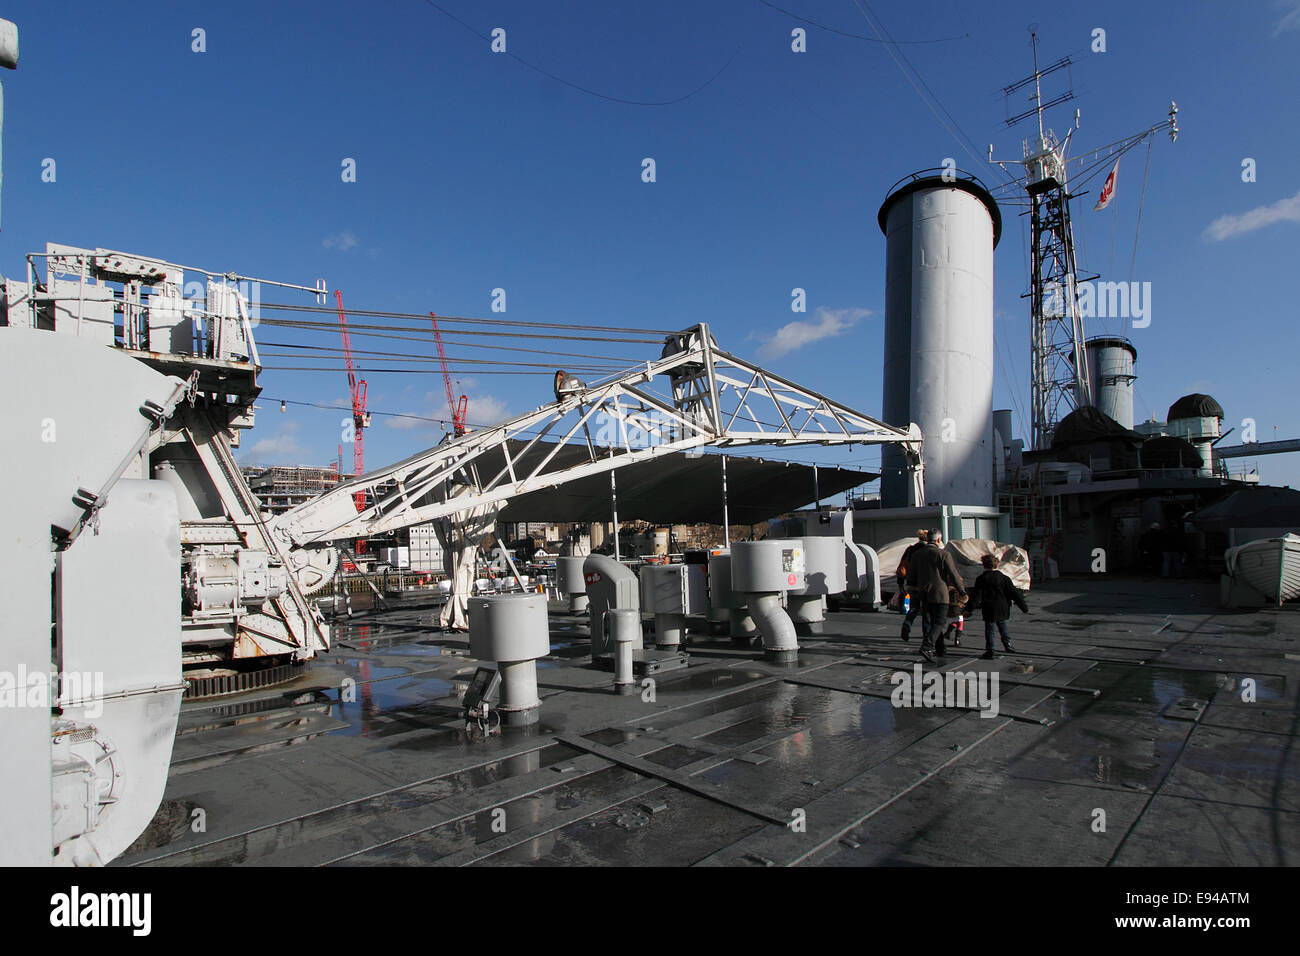 The crane used to raise and lower the Walrus spotting and rescue aircraft from and into the water HMS Belfast now Stock Photo